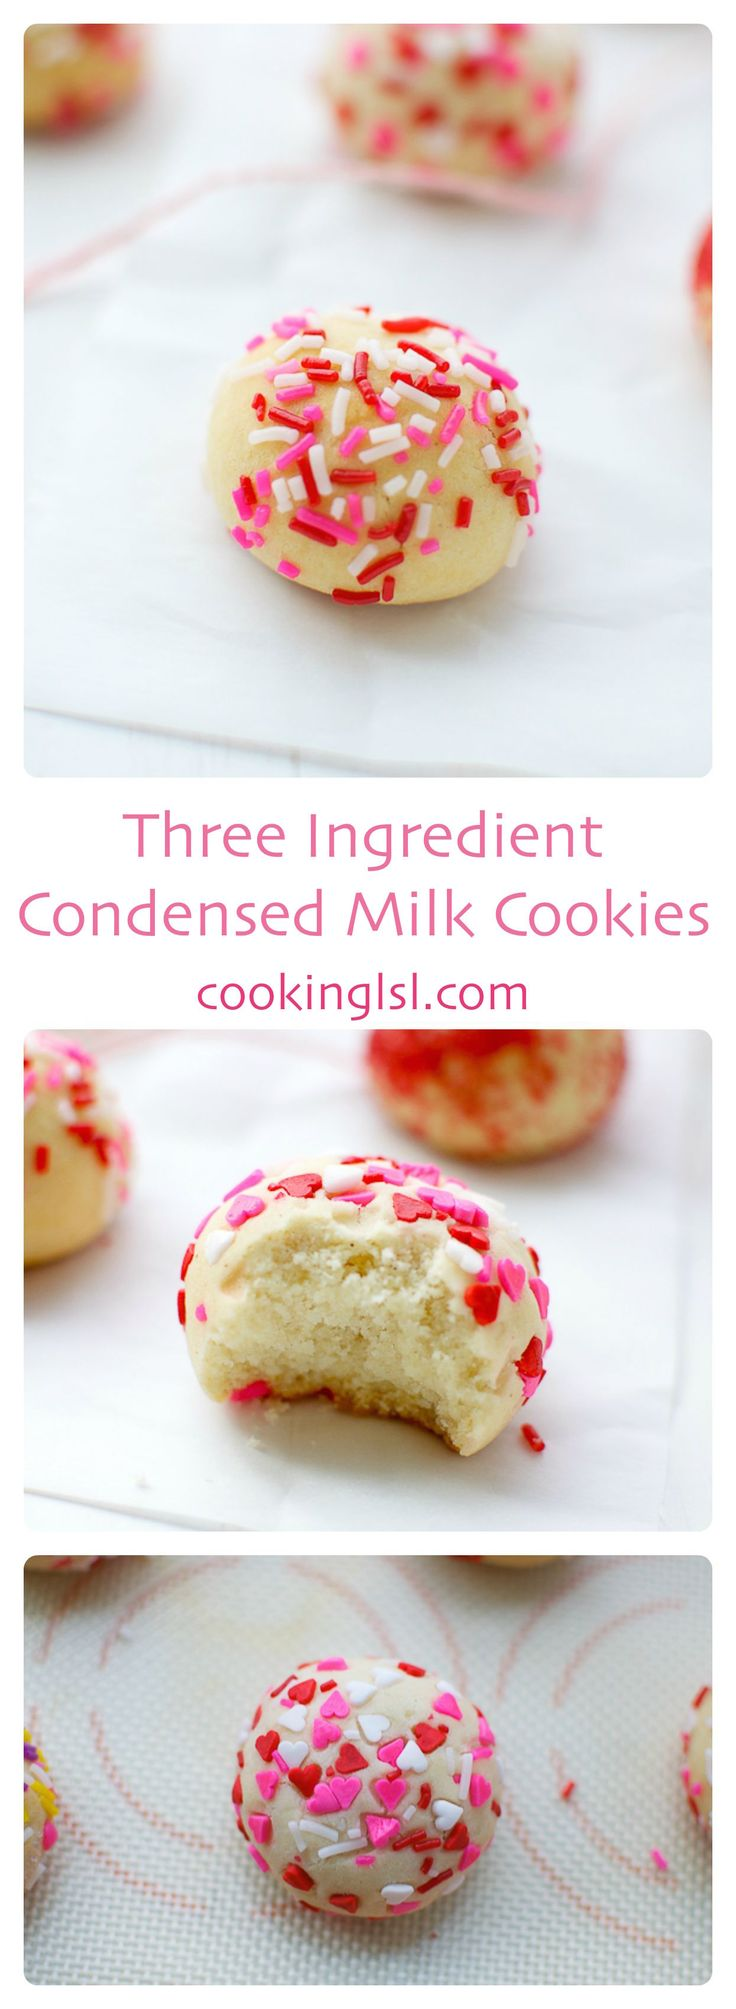 condensed-milk-cookies-three-ingredient #breastcancerawareness #october